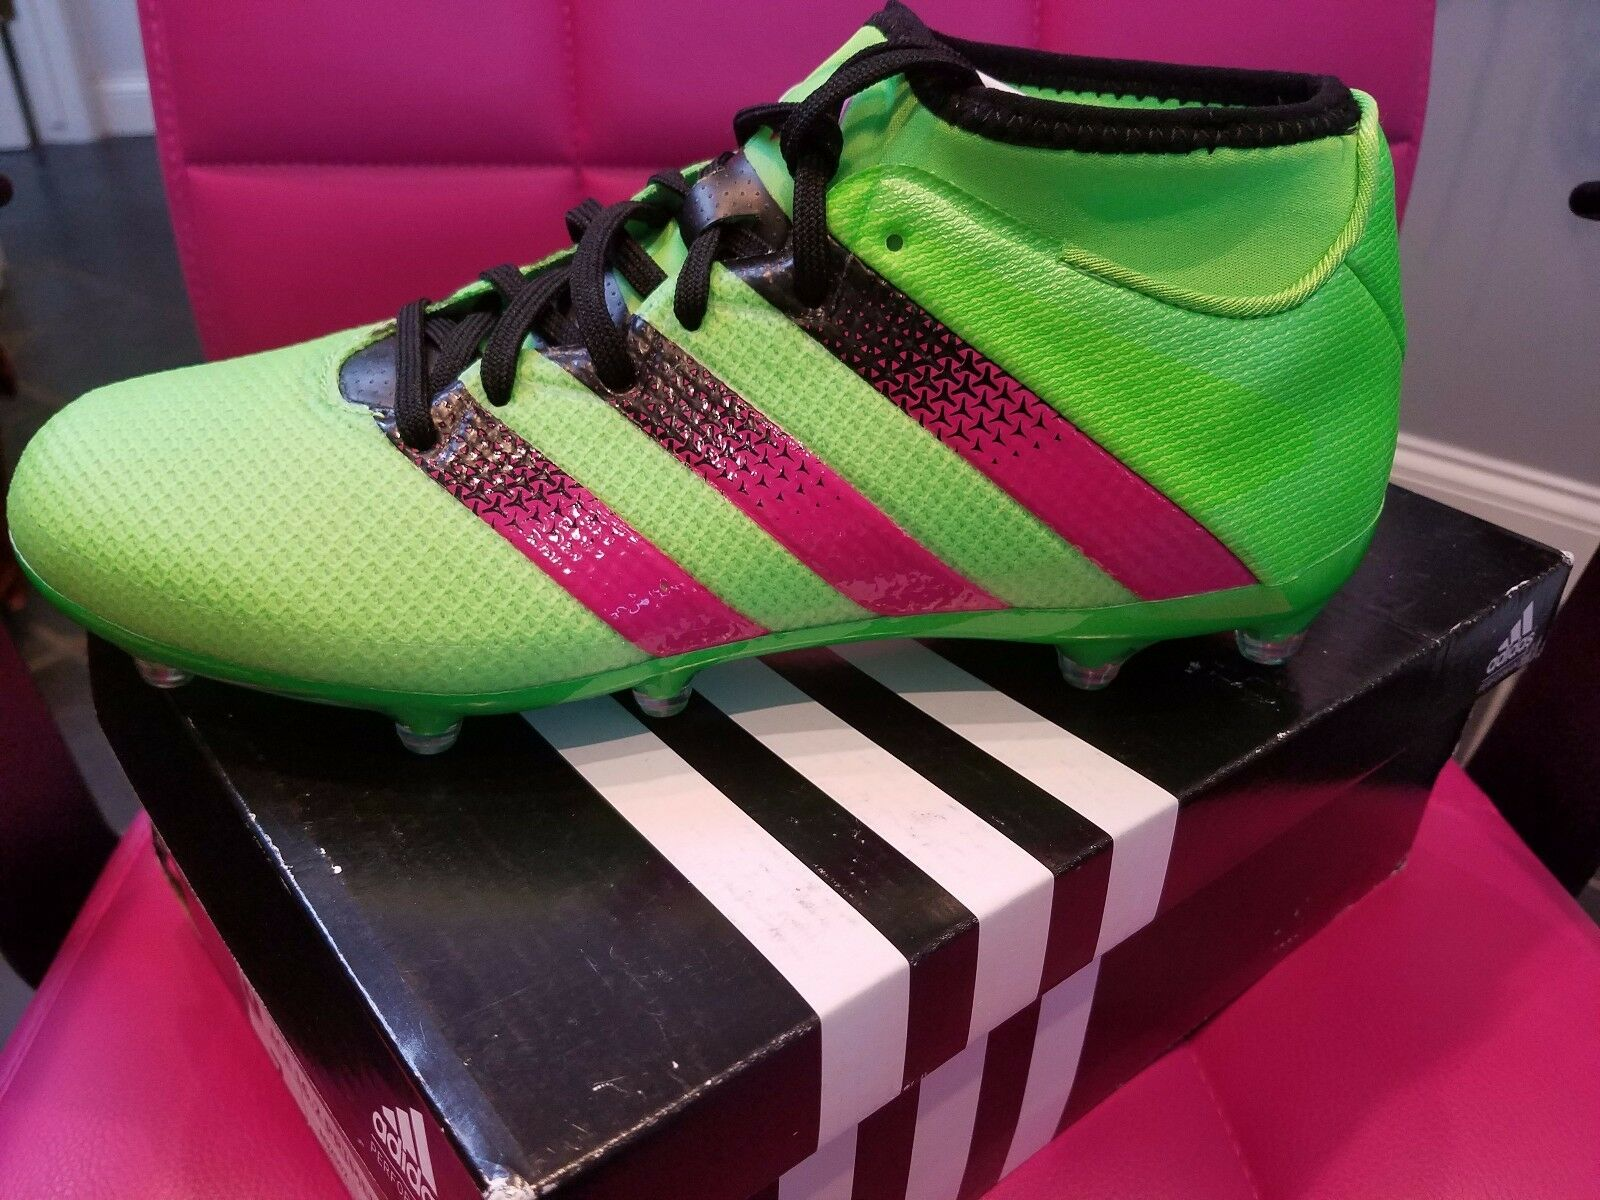 36ff80006 ADIDAS Ace 16.2 Primemesh AQ2552 FG AG Men s GREEN Soccer Cleats NEW IN BOX